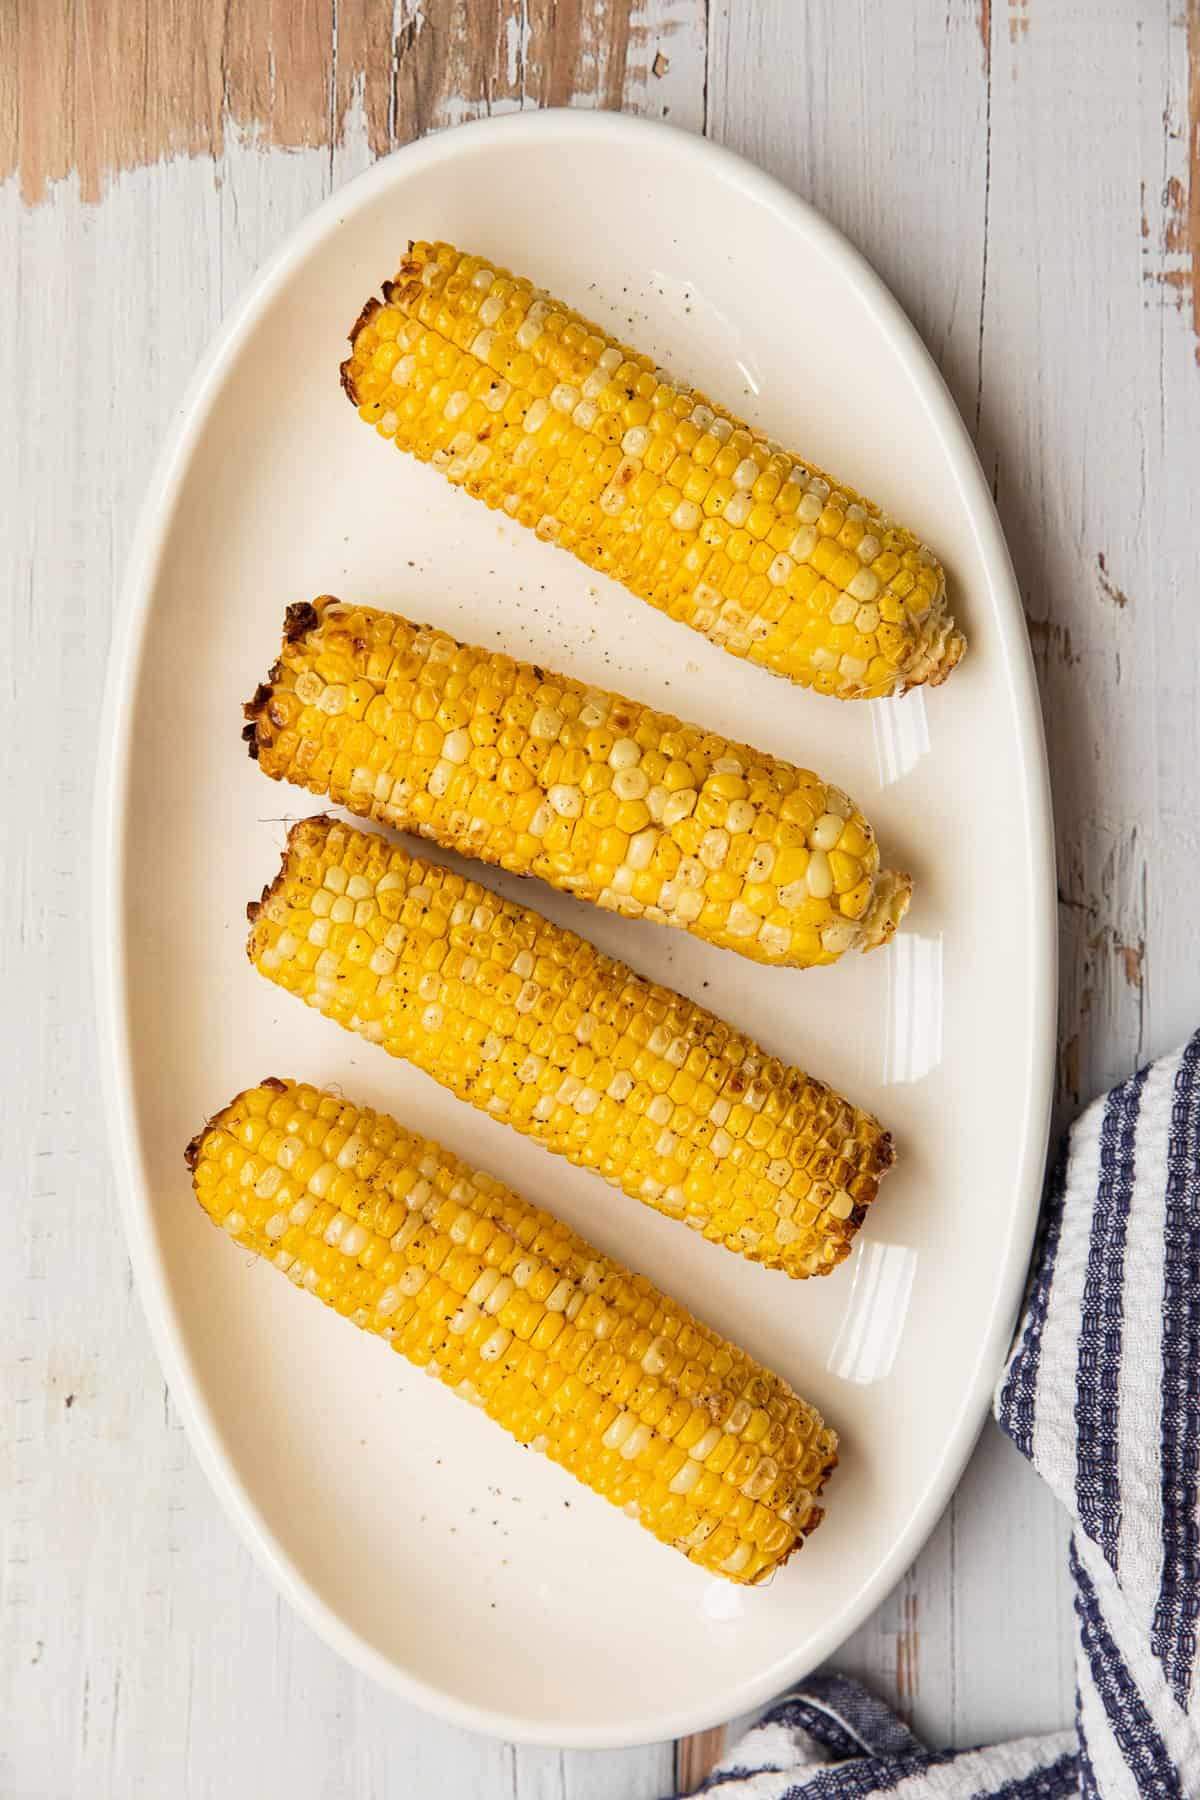 a platter with corn on the cob